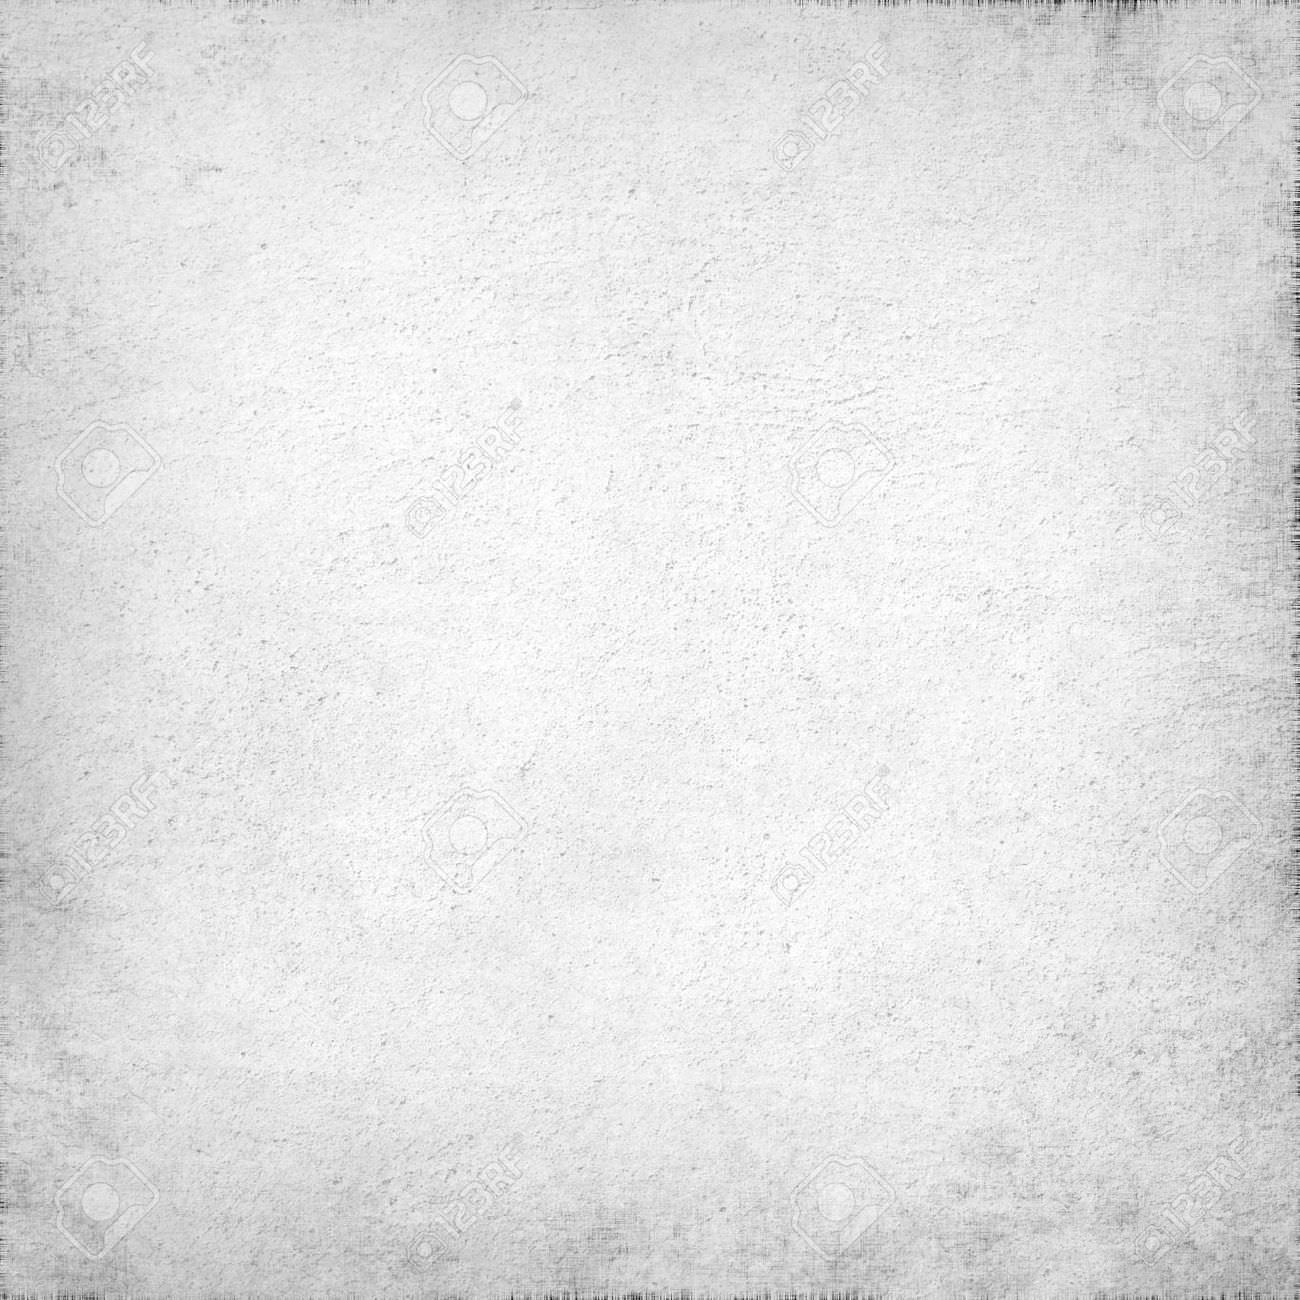 White Paper Grunge Background